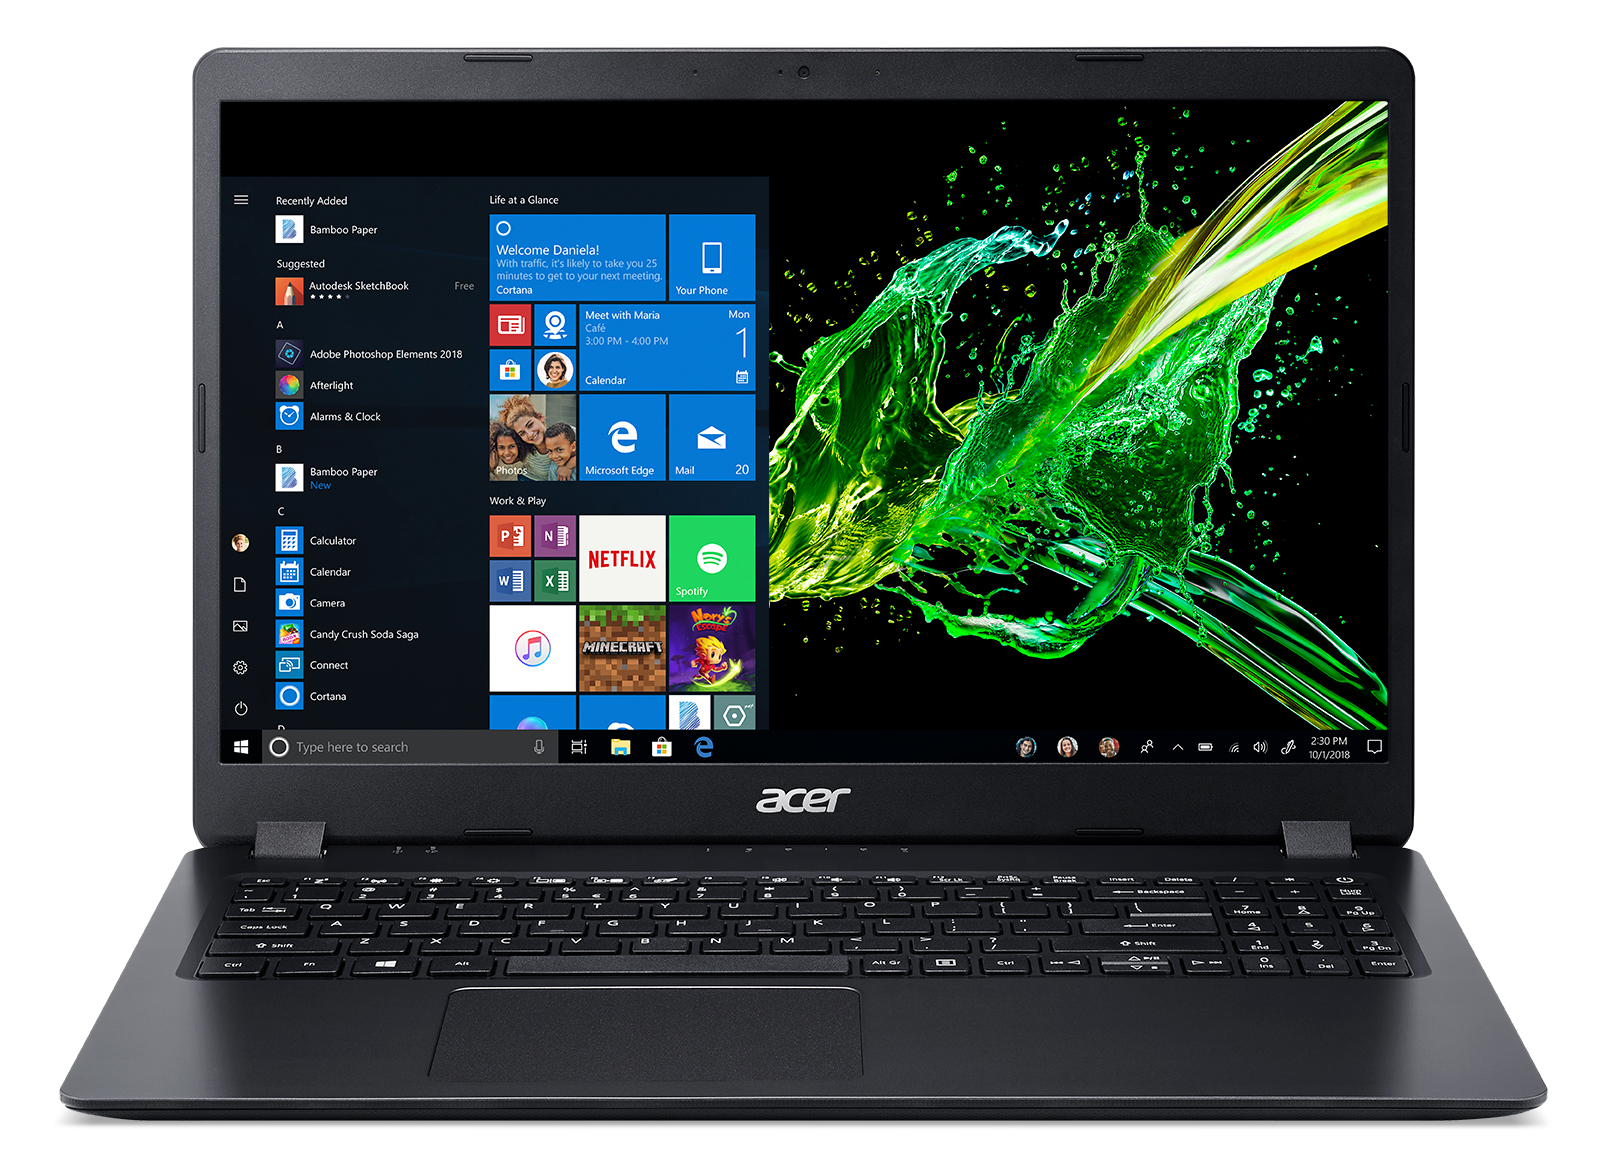 Acer Aspire 3 A315-54-391D, 15.6 FHD ComfyView LED, i3-8145U, 4GB DDR4, 512GB PCIe NVMe SSD, UHD Graphics 620, No ODD, Windows 10 Home